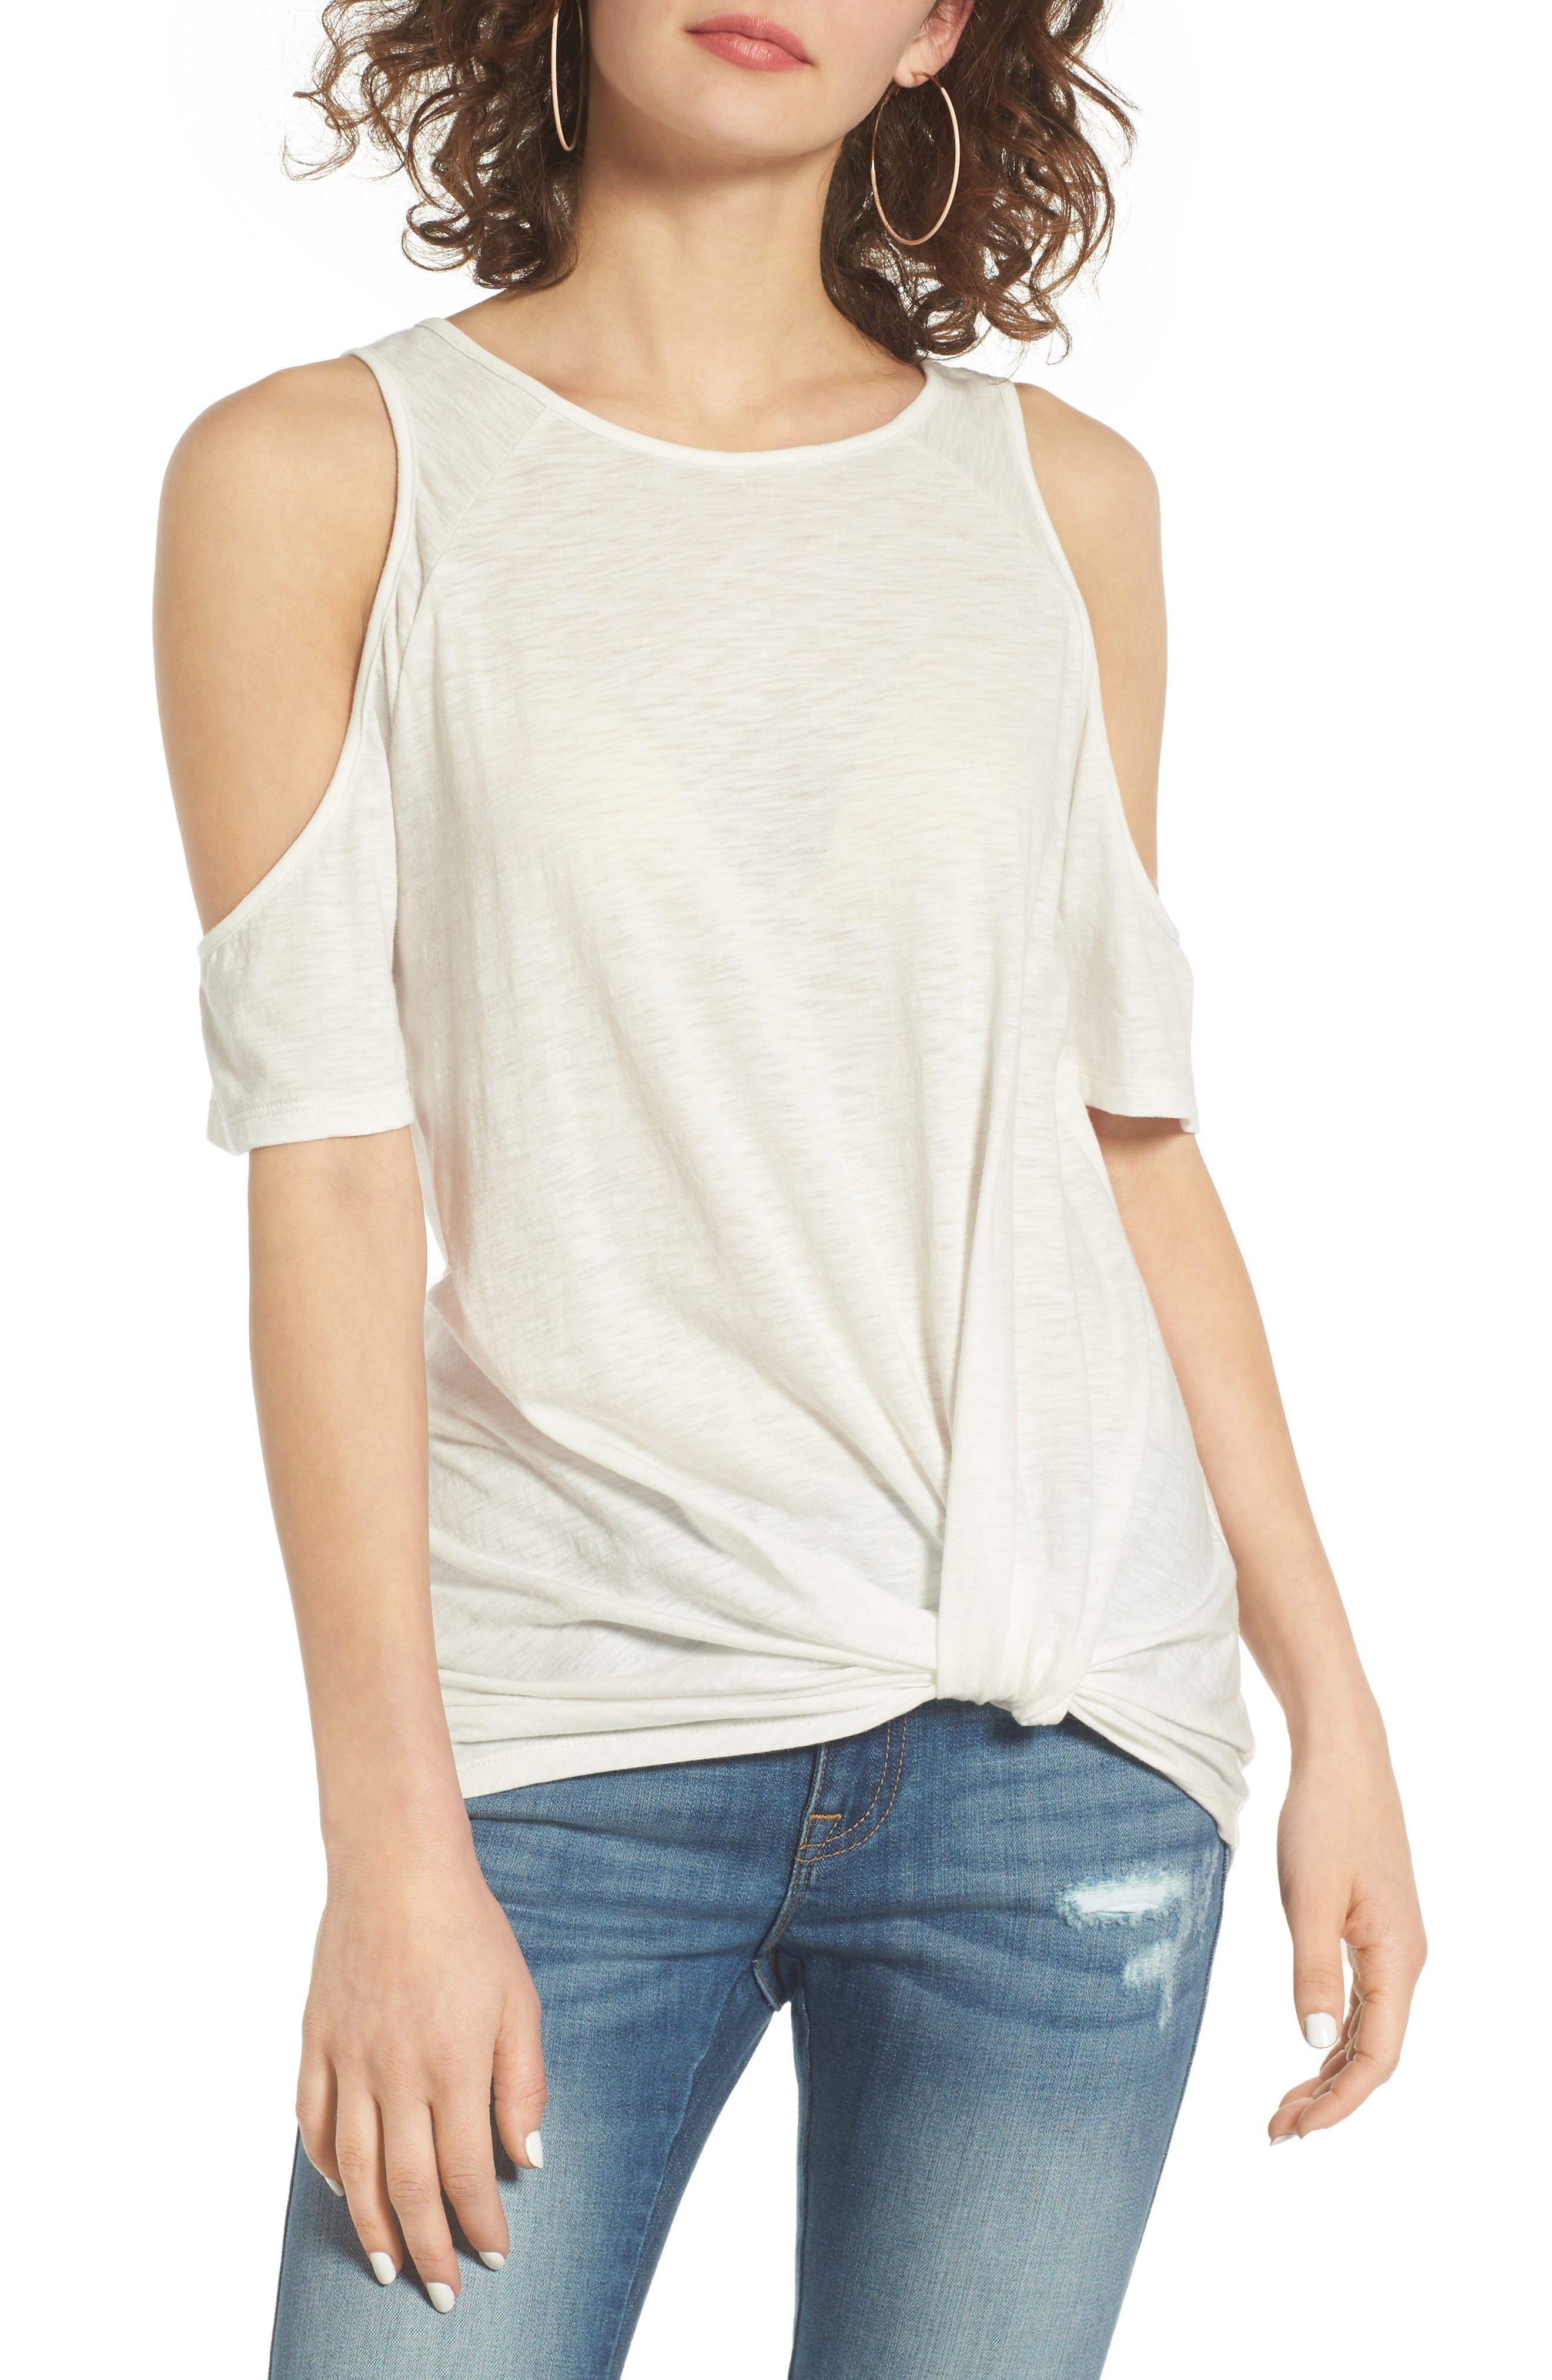 Main Image - BP. Twist Front Cold Shoulder Tee